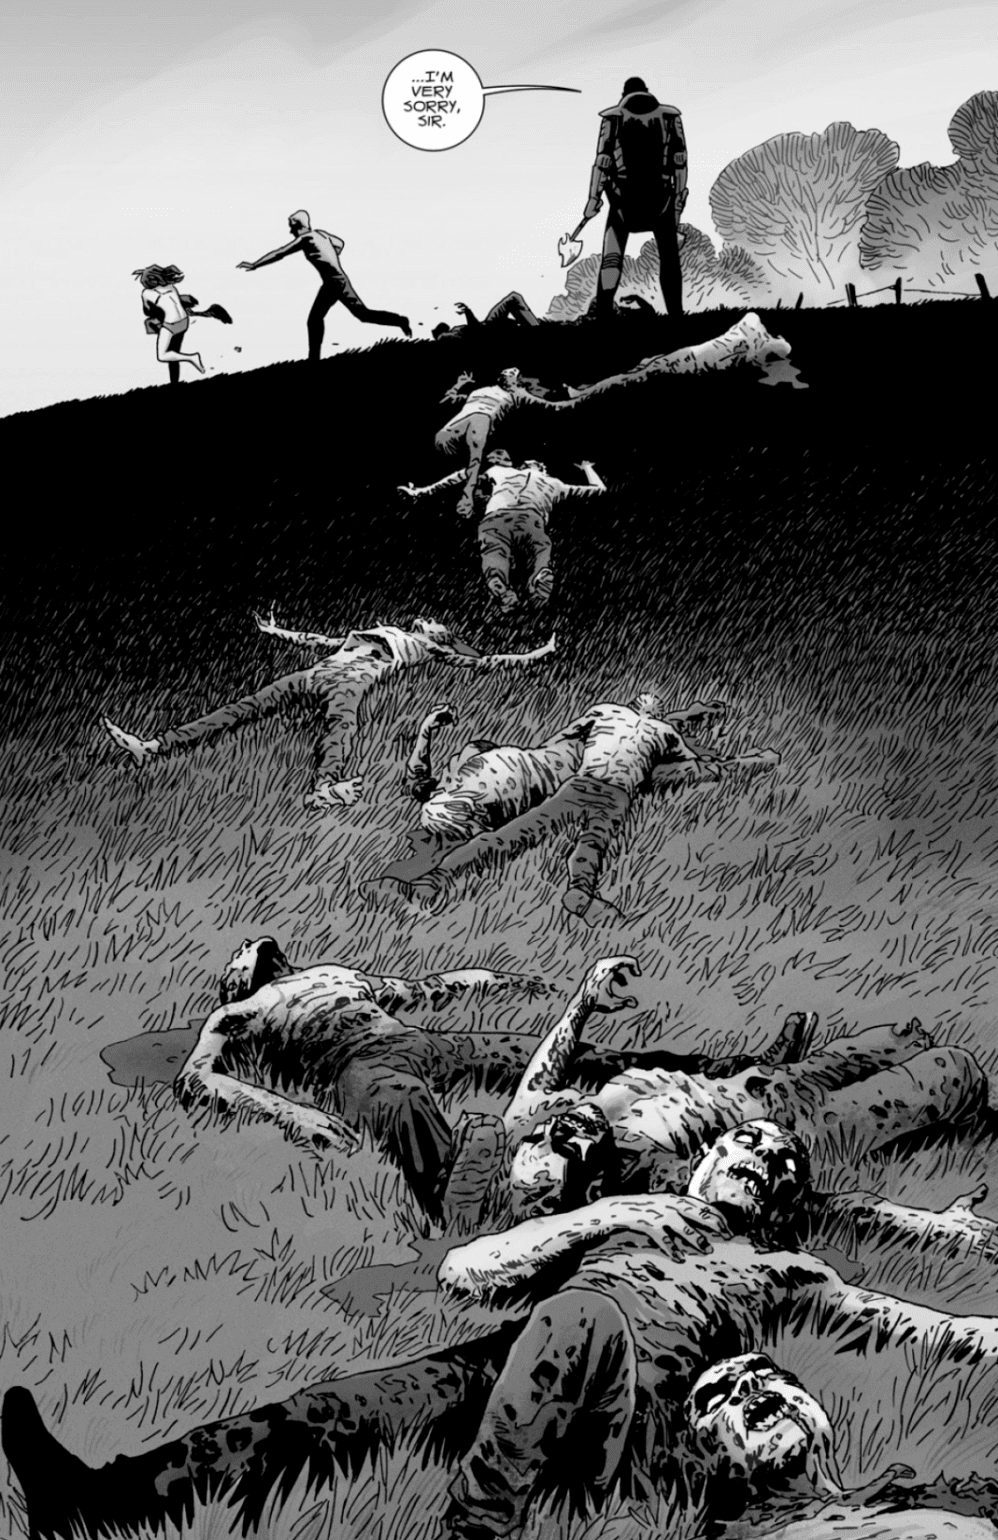 Review: THE WALKING DEAD #177 - Enter The Tropes That Bring Down The Commonwealth